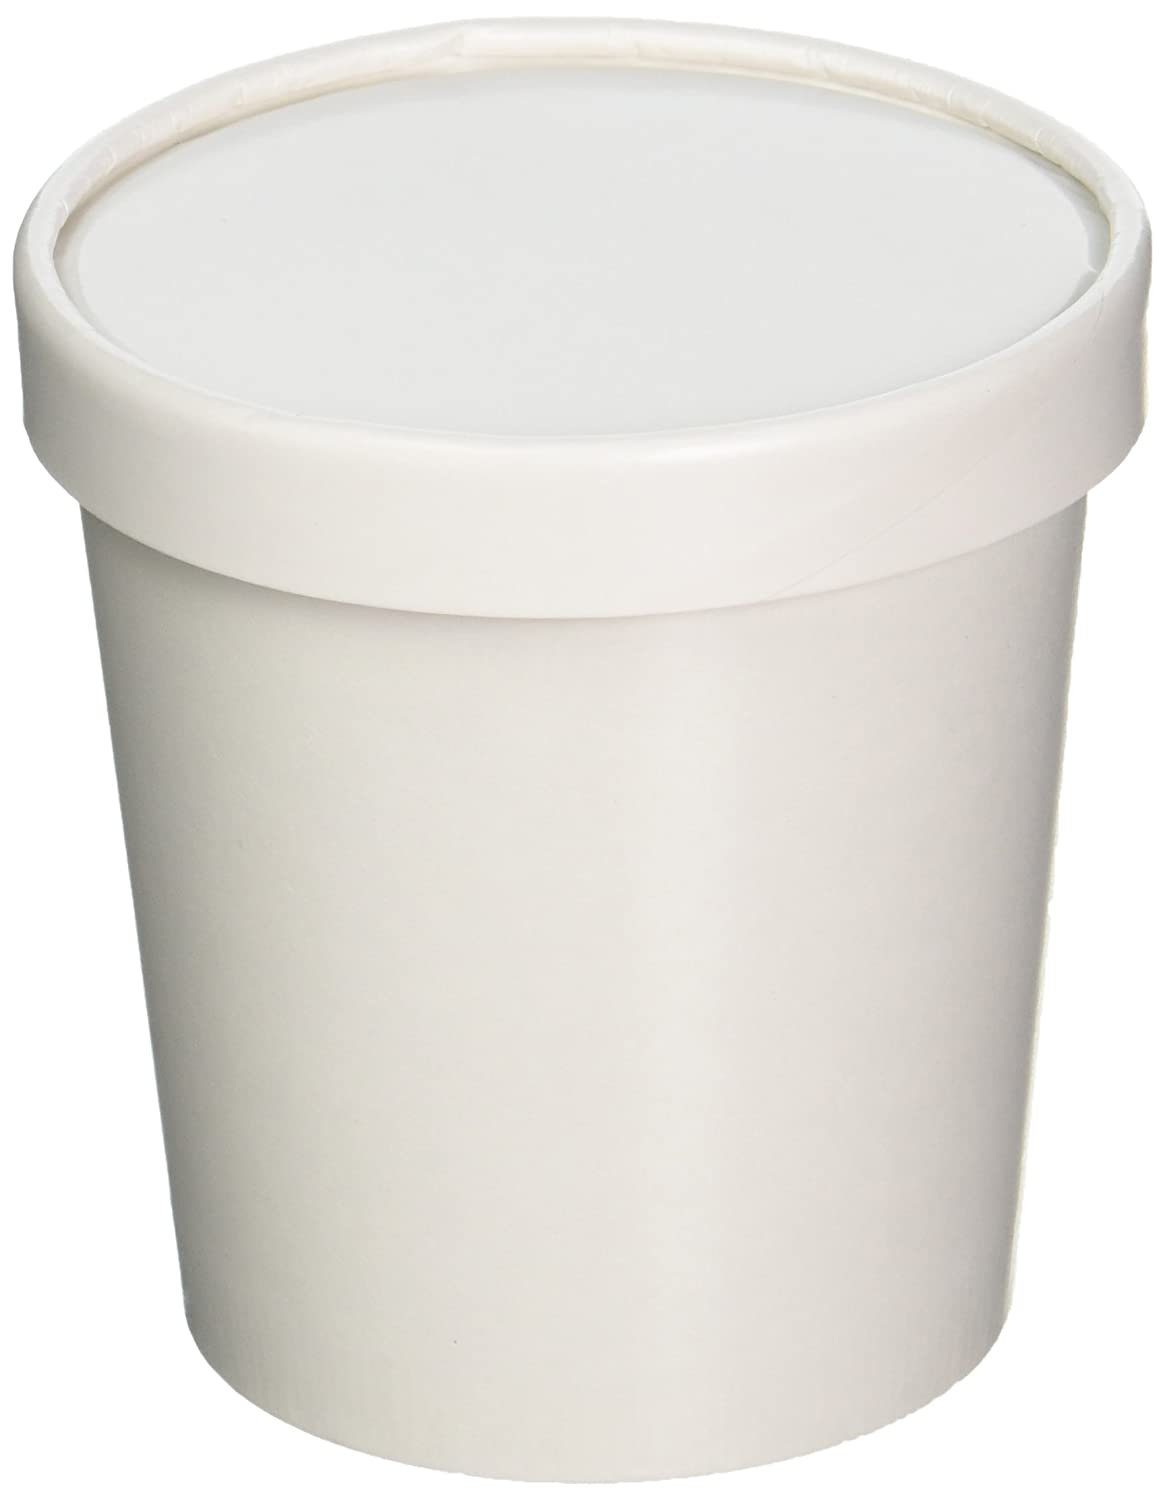 Amazoncom 25ct White Pint Frozen Dessert Containers 16 oz Kitchen